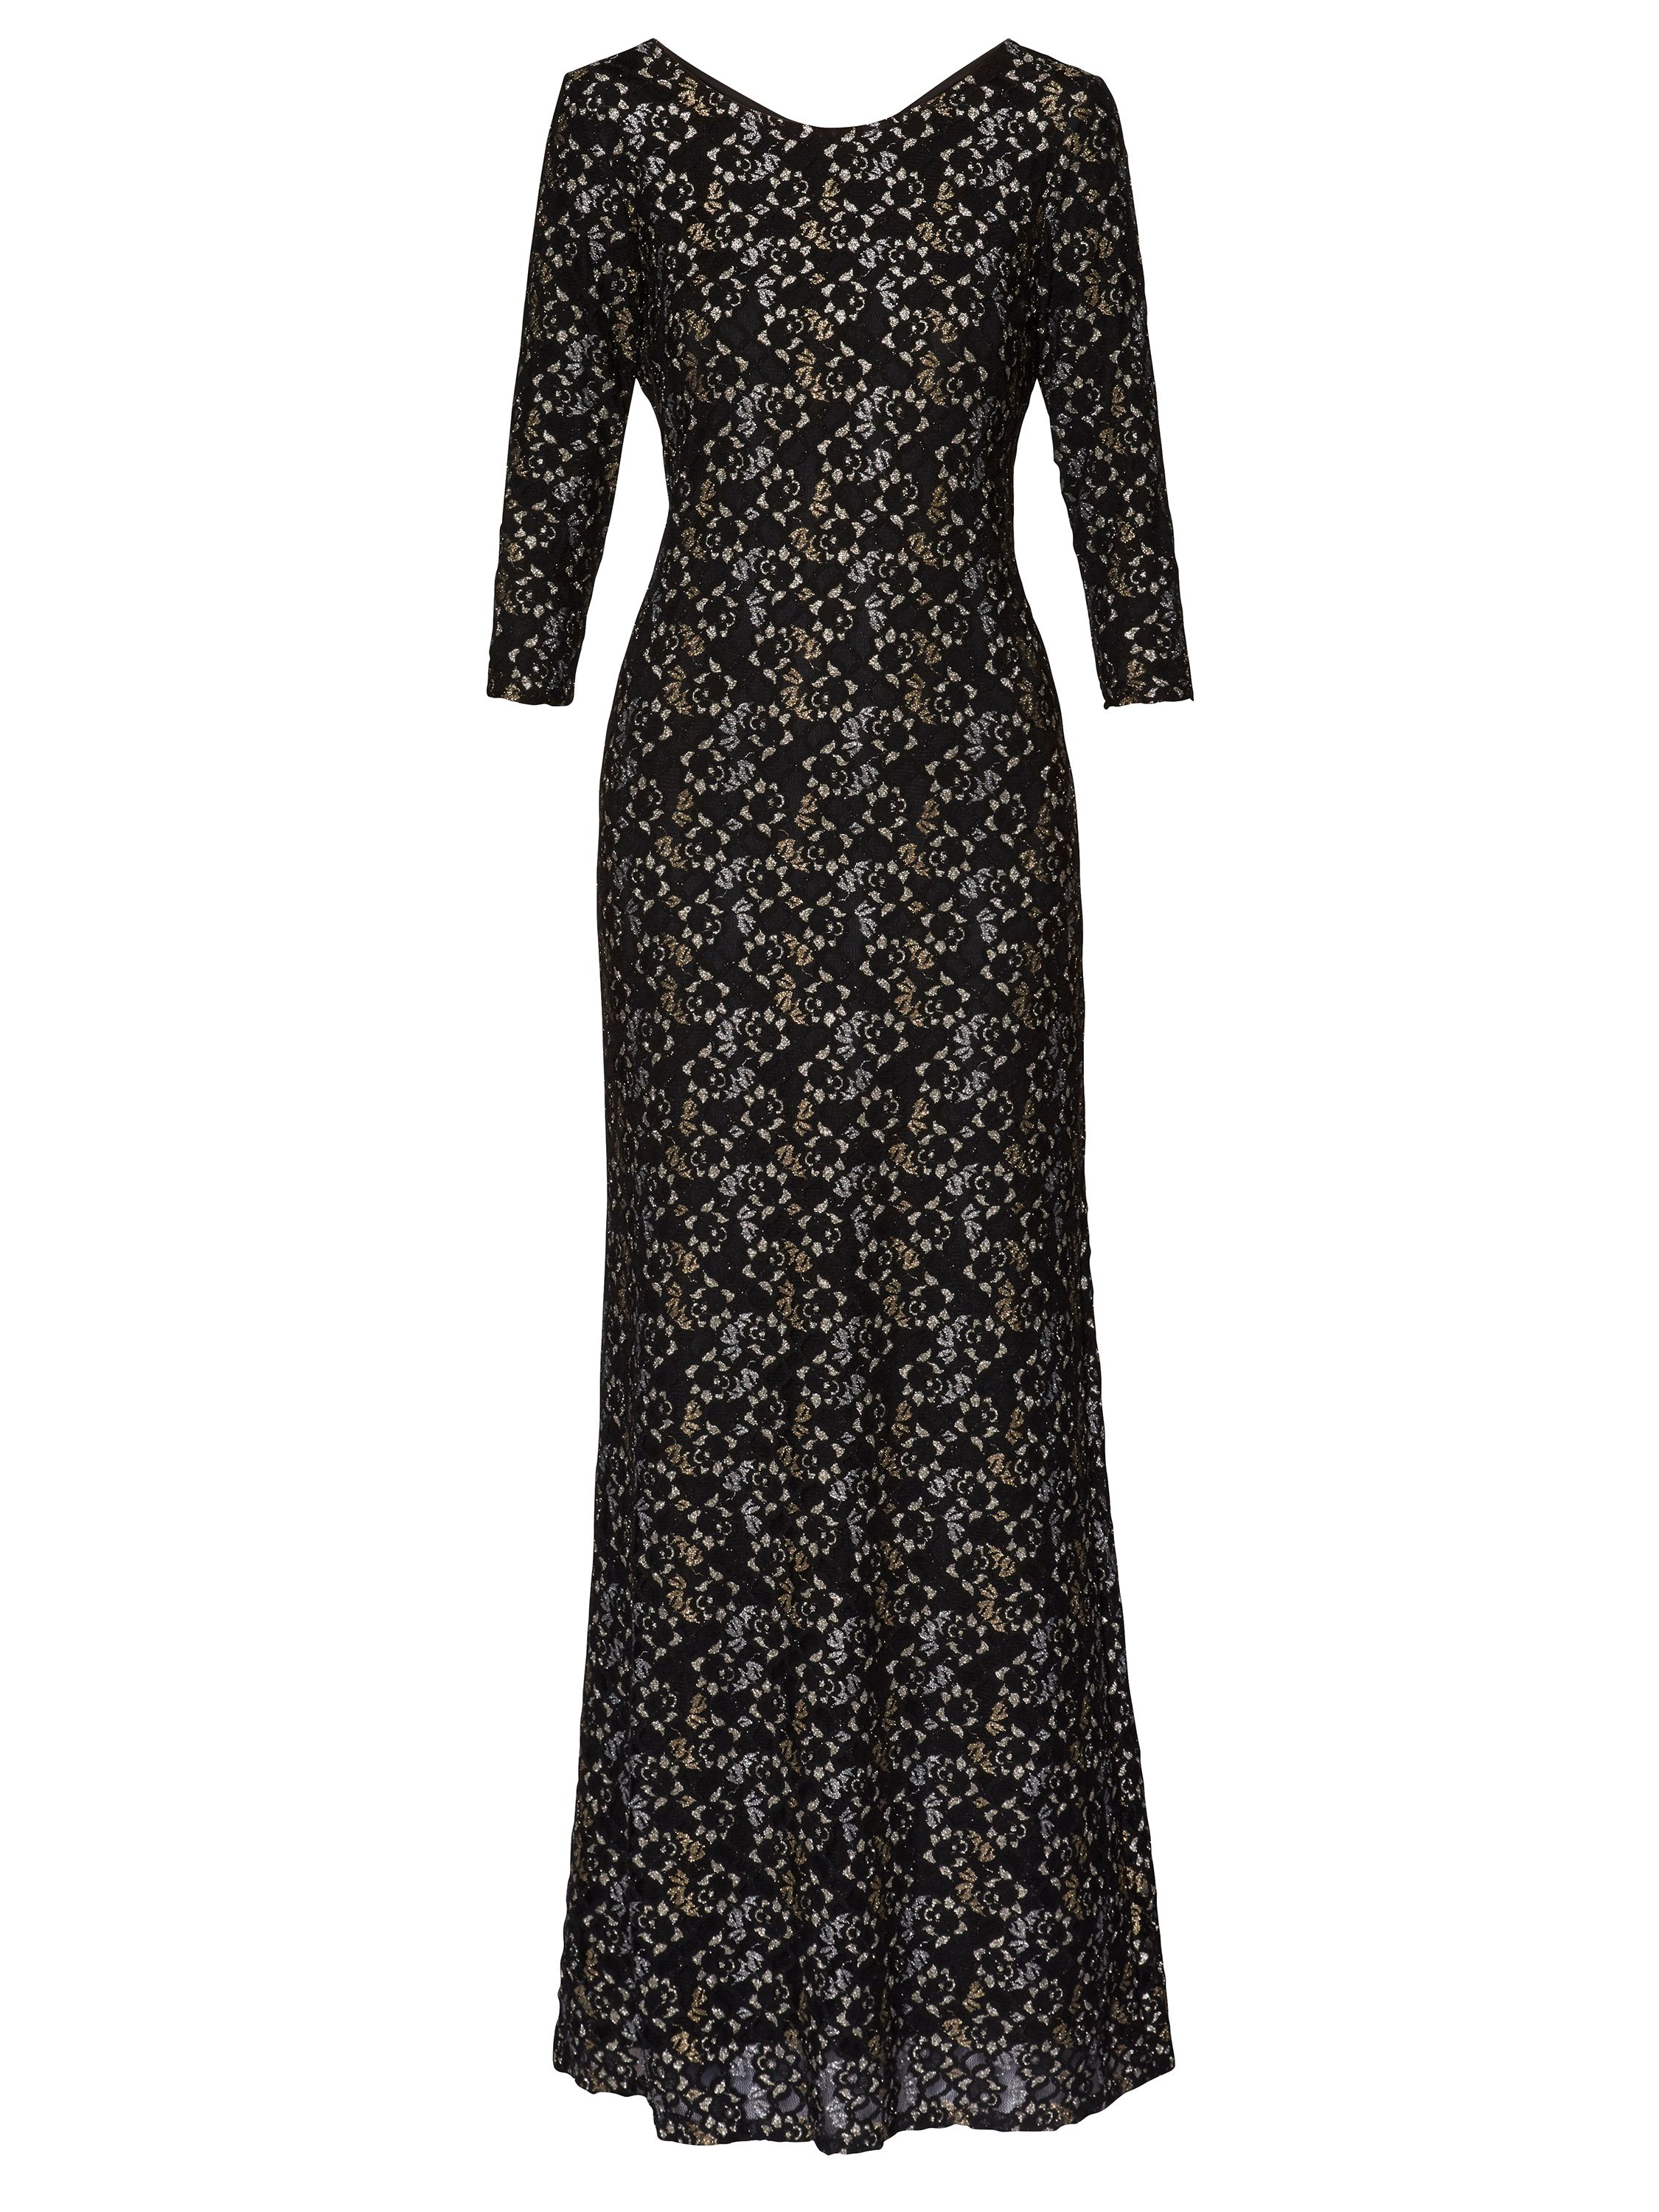 Gina Bacconi Marie Lace Maxi Dress, Black